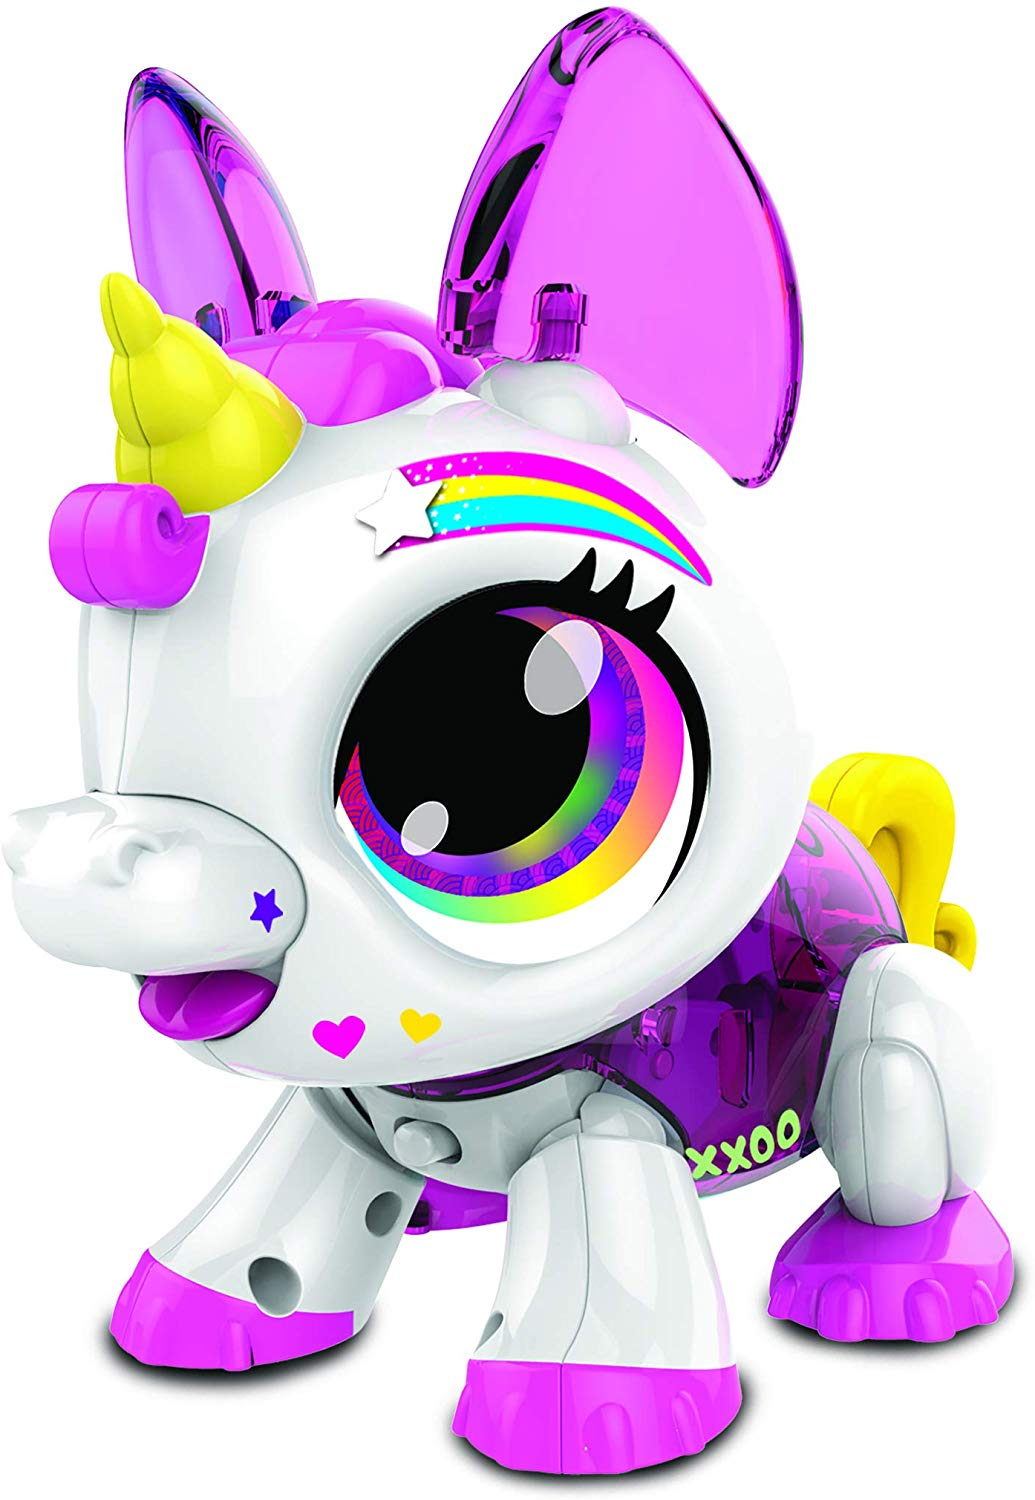 'Build a Bot Unicorn' Review And Why You Should Get One of These Two For your Child